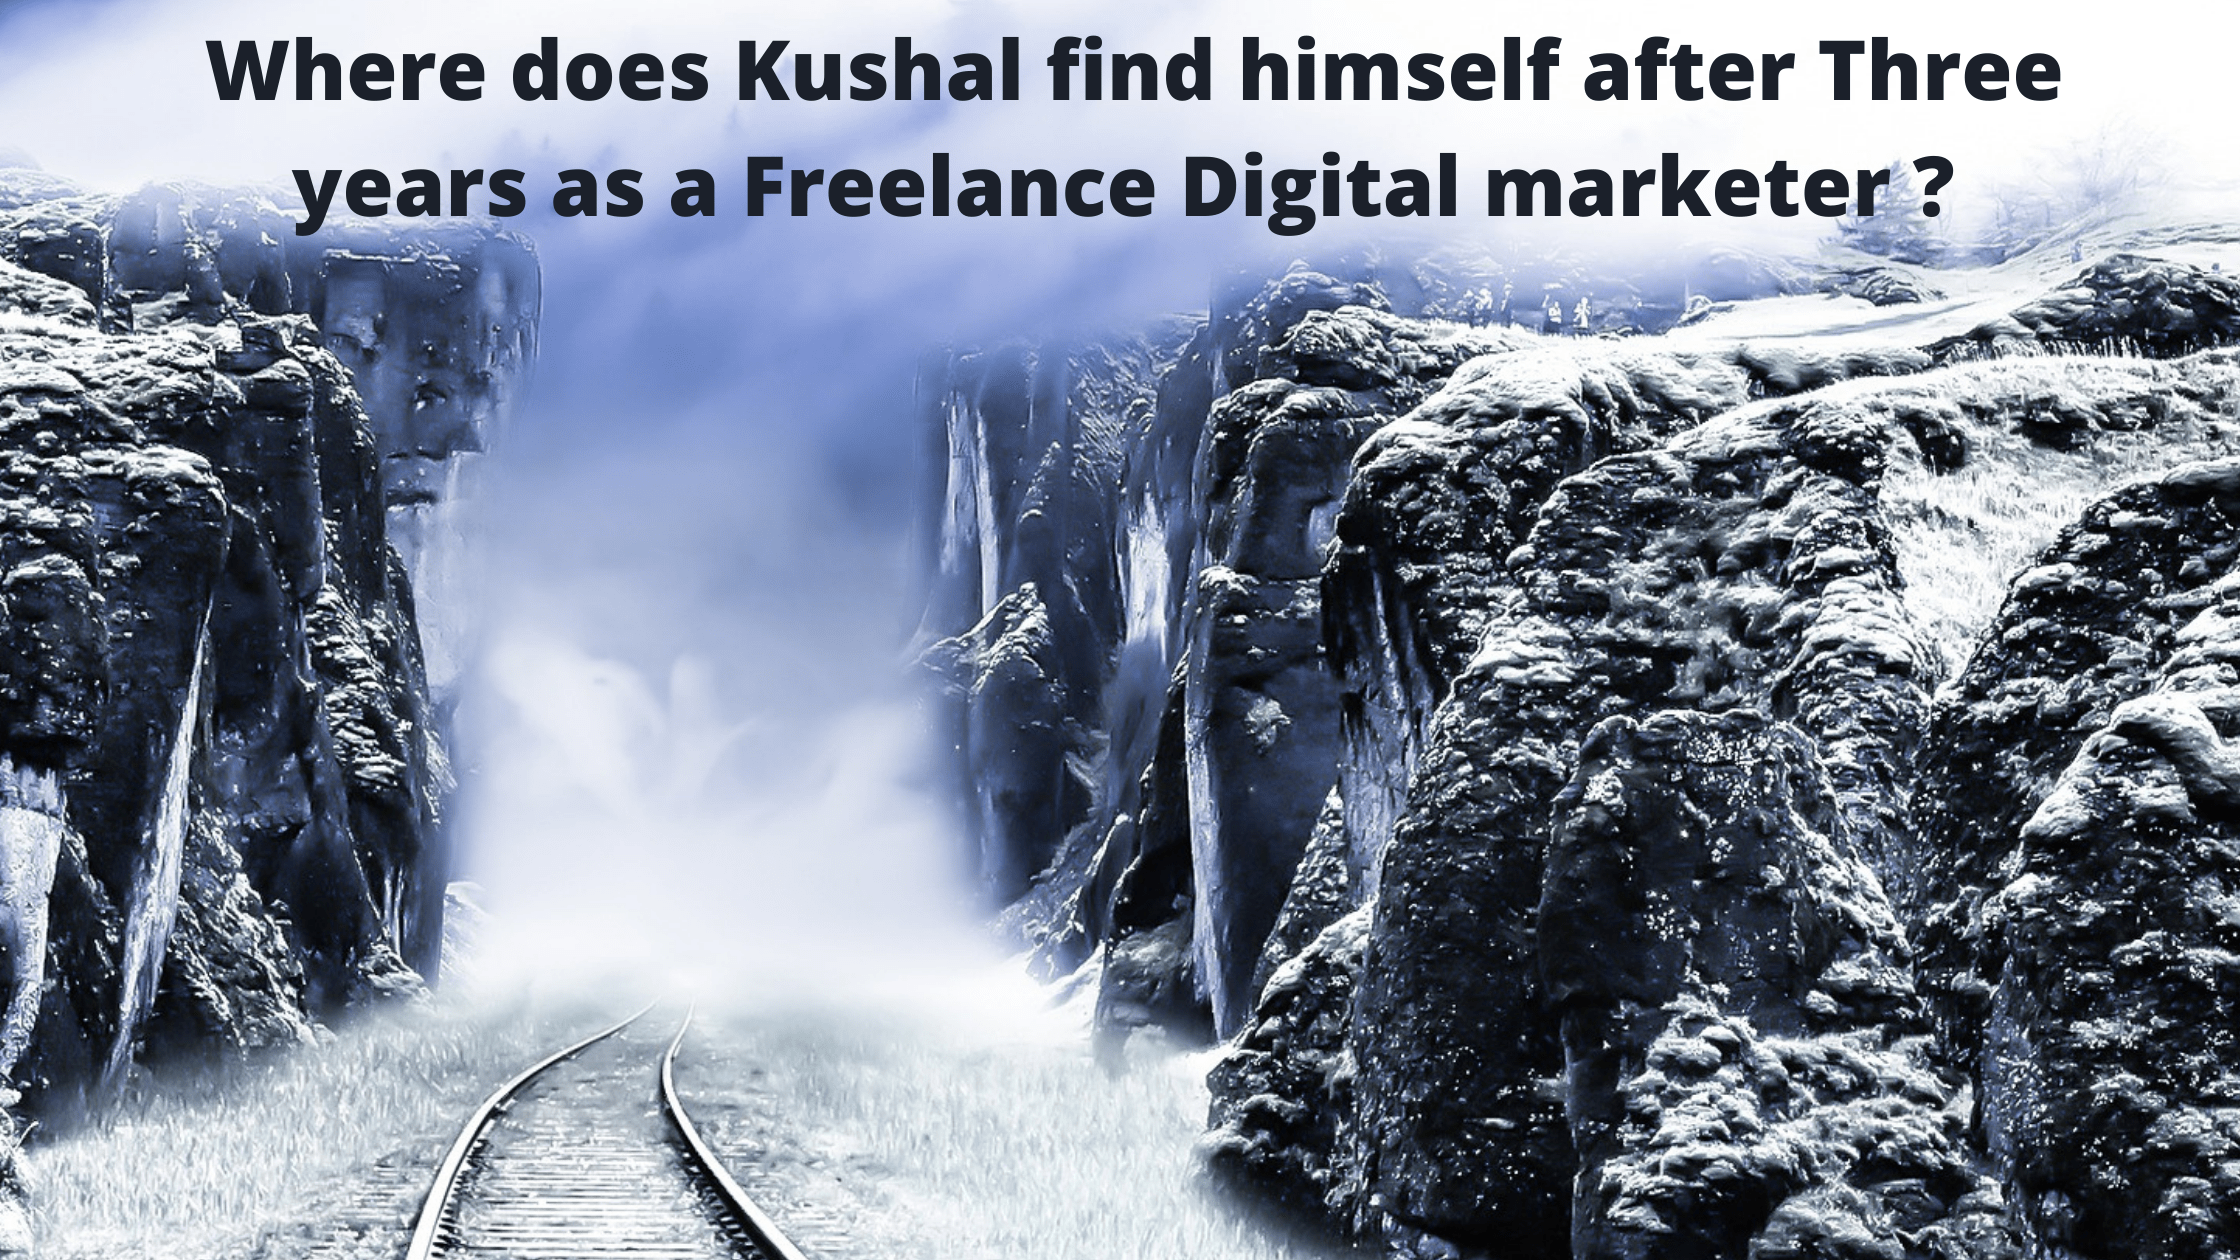 Where does Kushal find himself after Three years as a Freelance Digital marketer